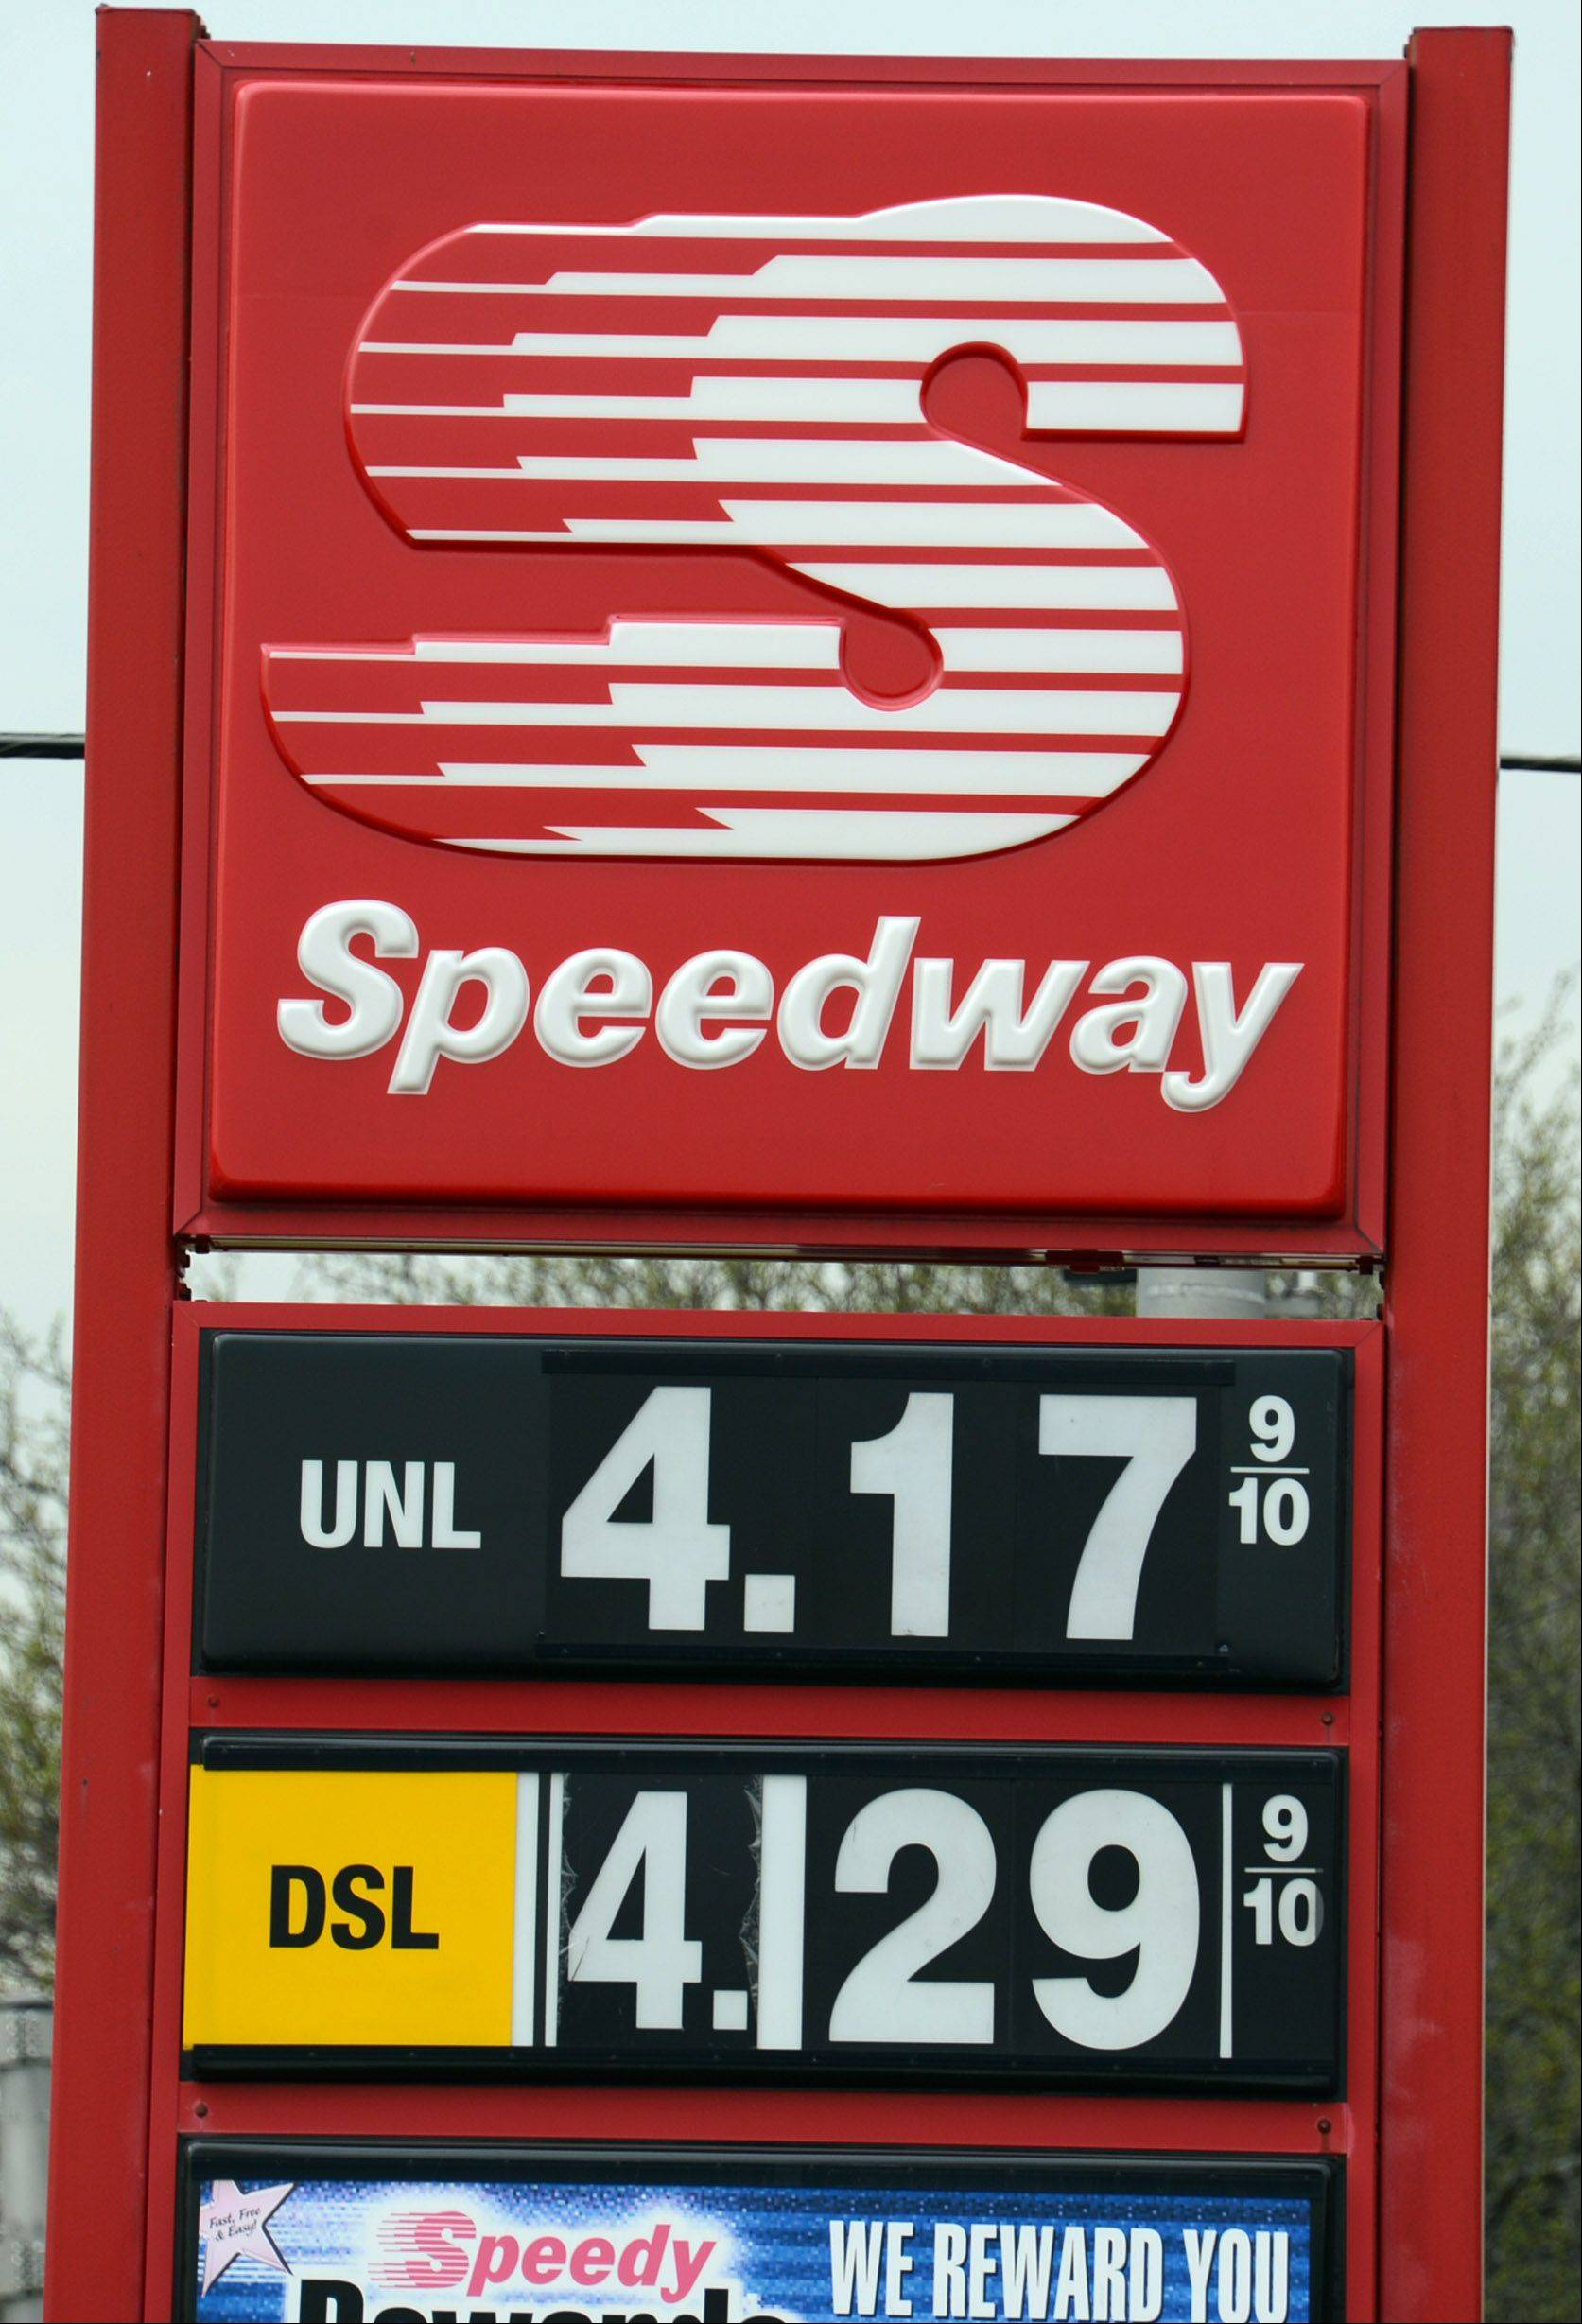 A gallon of regular unleaded was $4.17 at this Speedway station in Palatine Thursday, far above national averages.